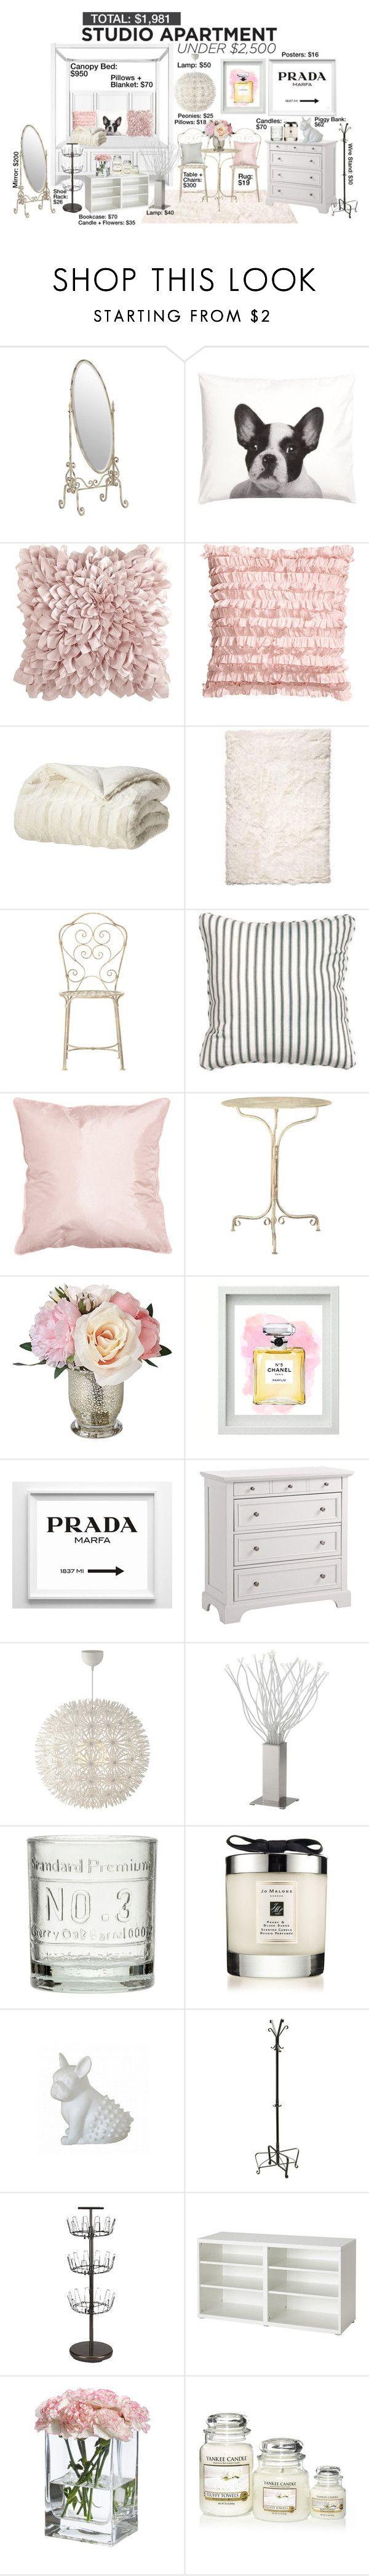 """Studio Apartment Under $2,500 - #4"" by theleatherlook ❤ liked on Polyvore featuring interior, interiors, interior design, home, home decor, interior decorating, H&M, Pier 1 Imports, Home Decorators Collection and Chanel"